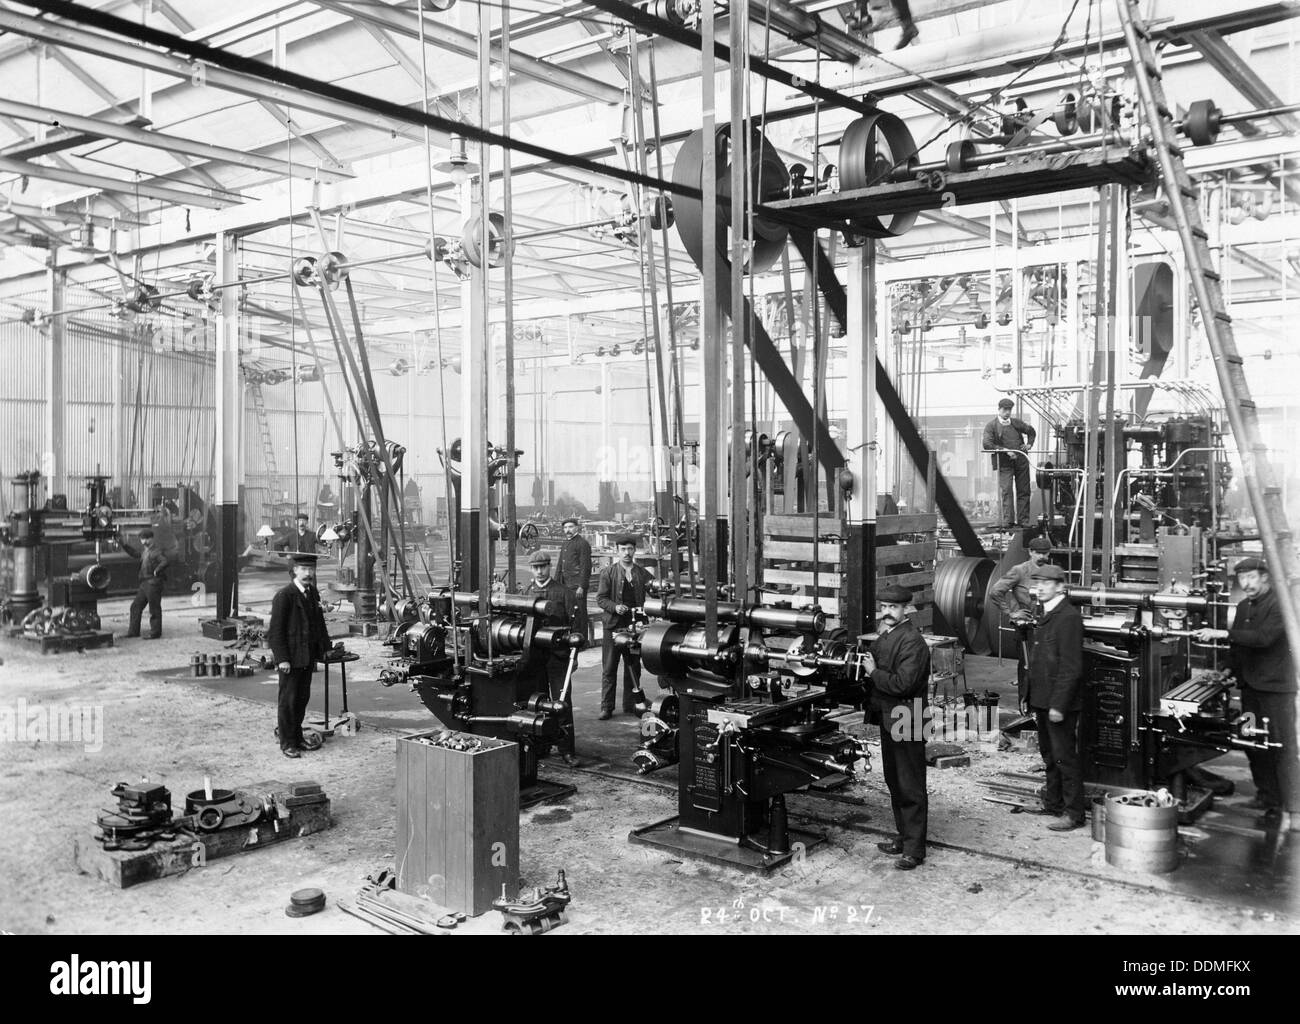 Machine shop in the Argyll car factory, Glasgow, c1899-c1930. - Stock Image